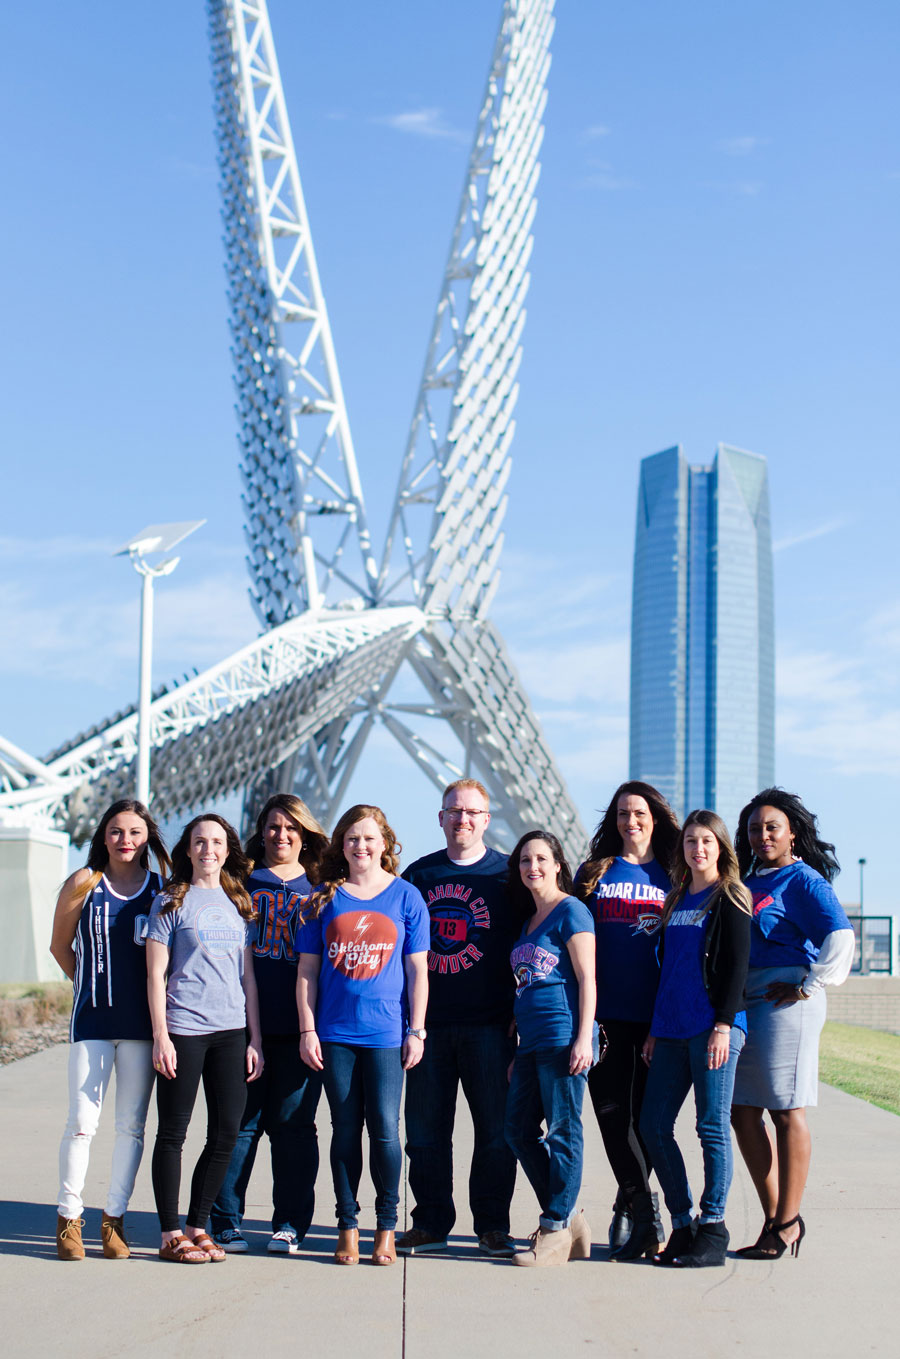 Our team is ready, are you? - Mental Health and Wellness Services and Substance Abuse Treatment Team in Oklahoma City.